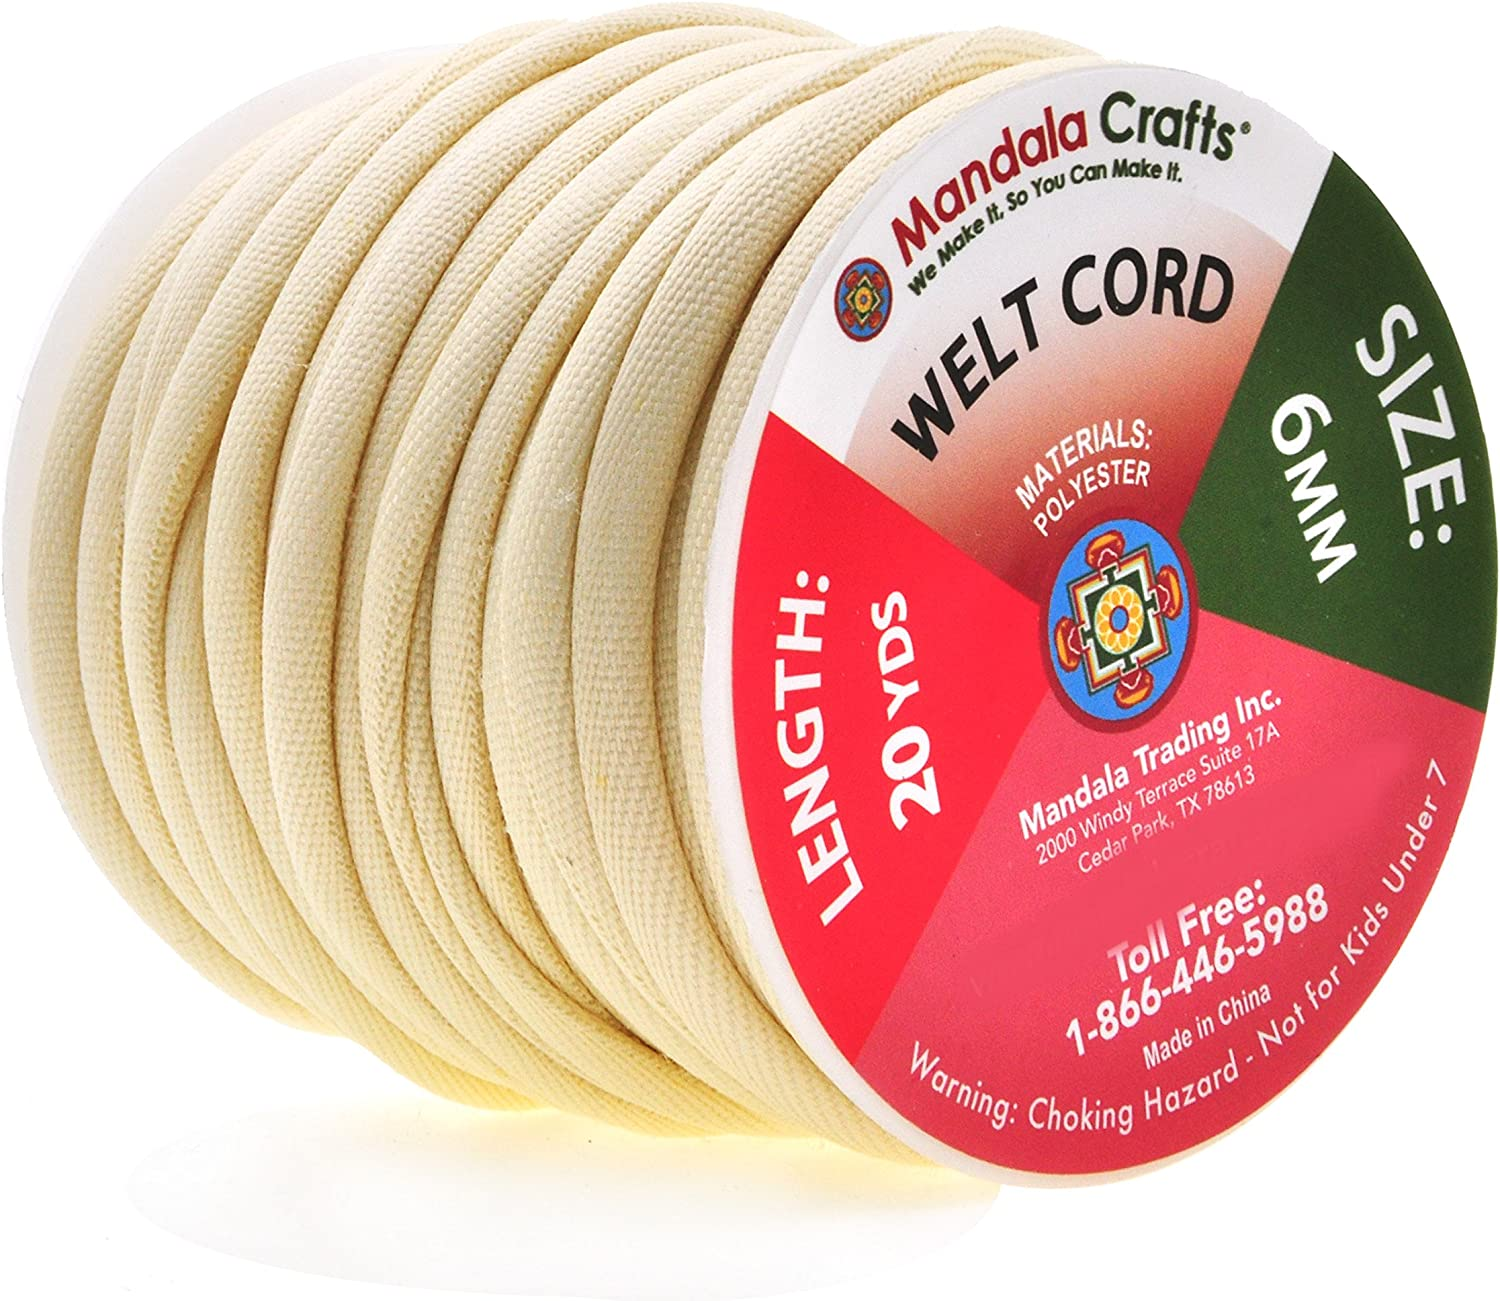 Piping Cord Cotton 4 mm  6 mm 8 mm Polyester 5 mm Sold in 5 mt Lengths Sewing Upholstery Needlecrafts